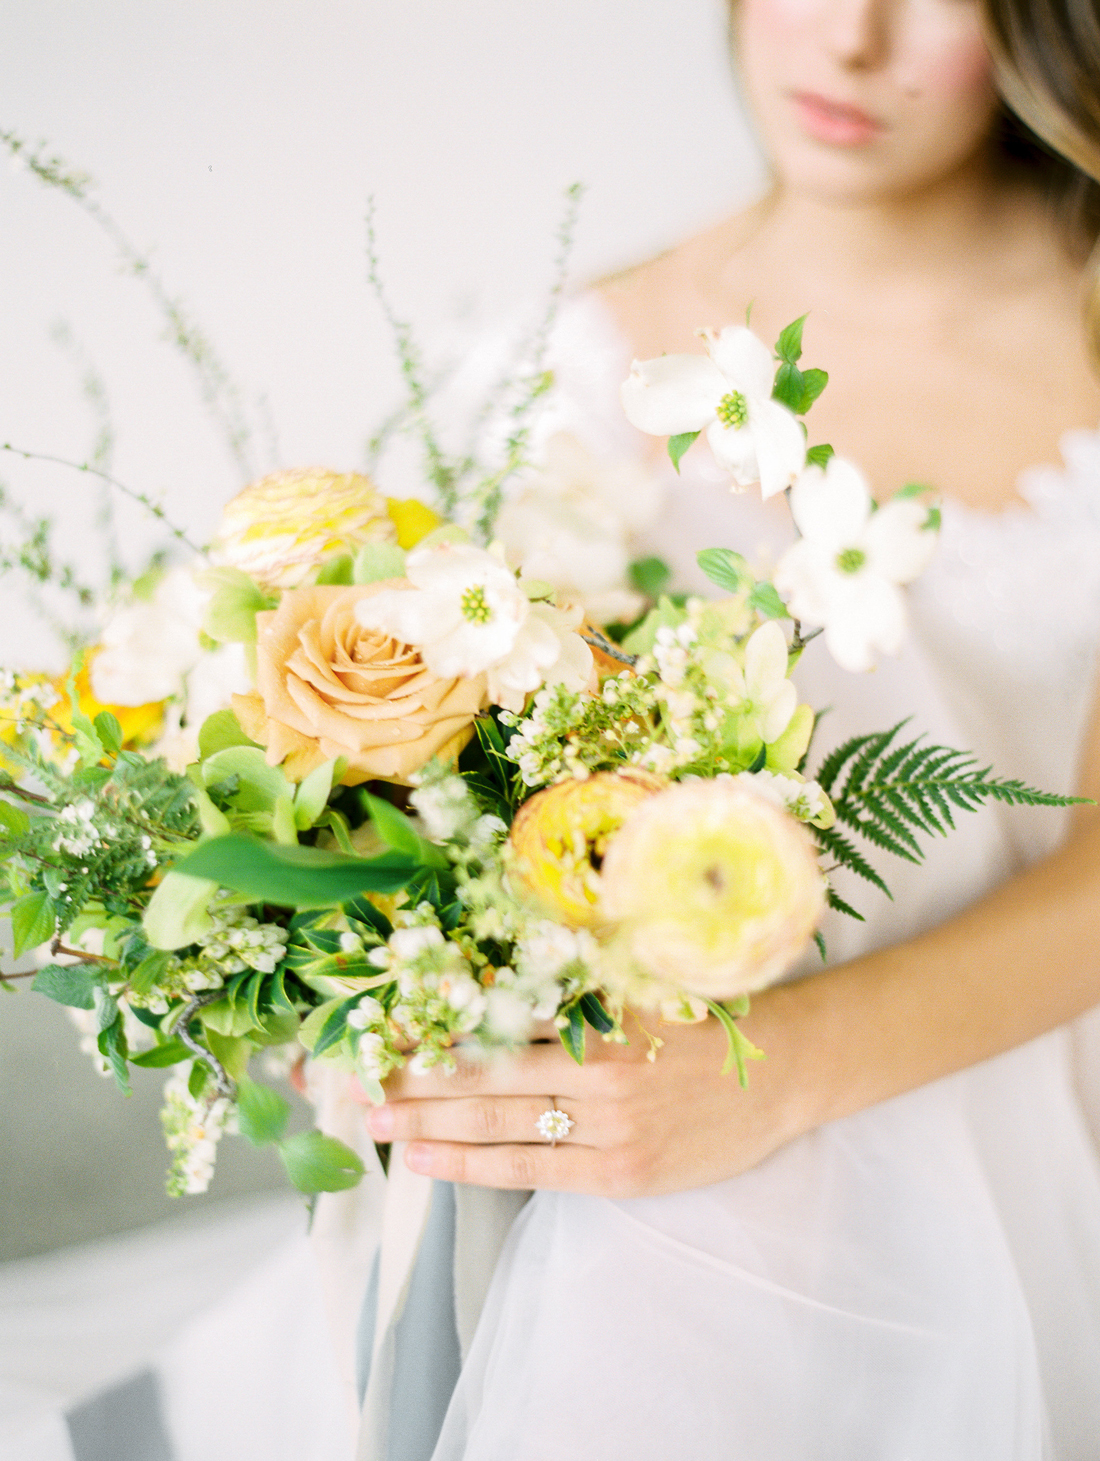 bouquet of light orange roses, greenery, and yellow blooms